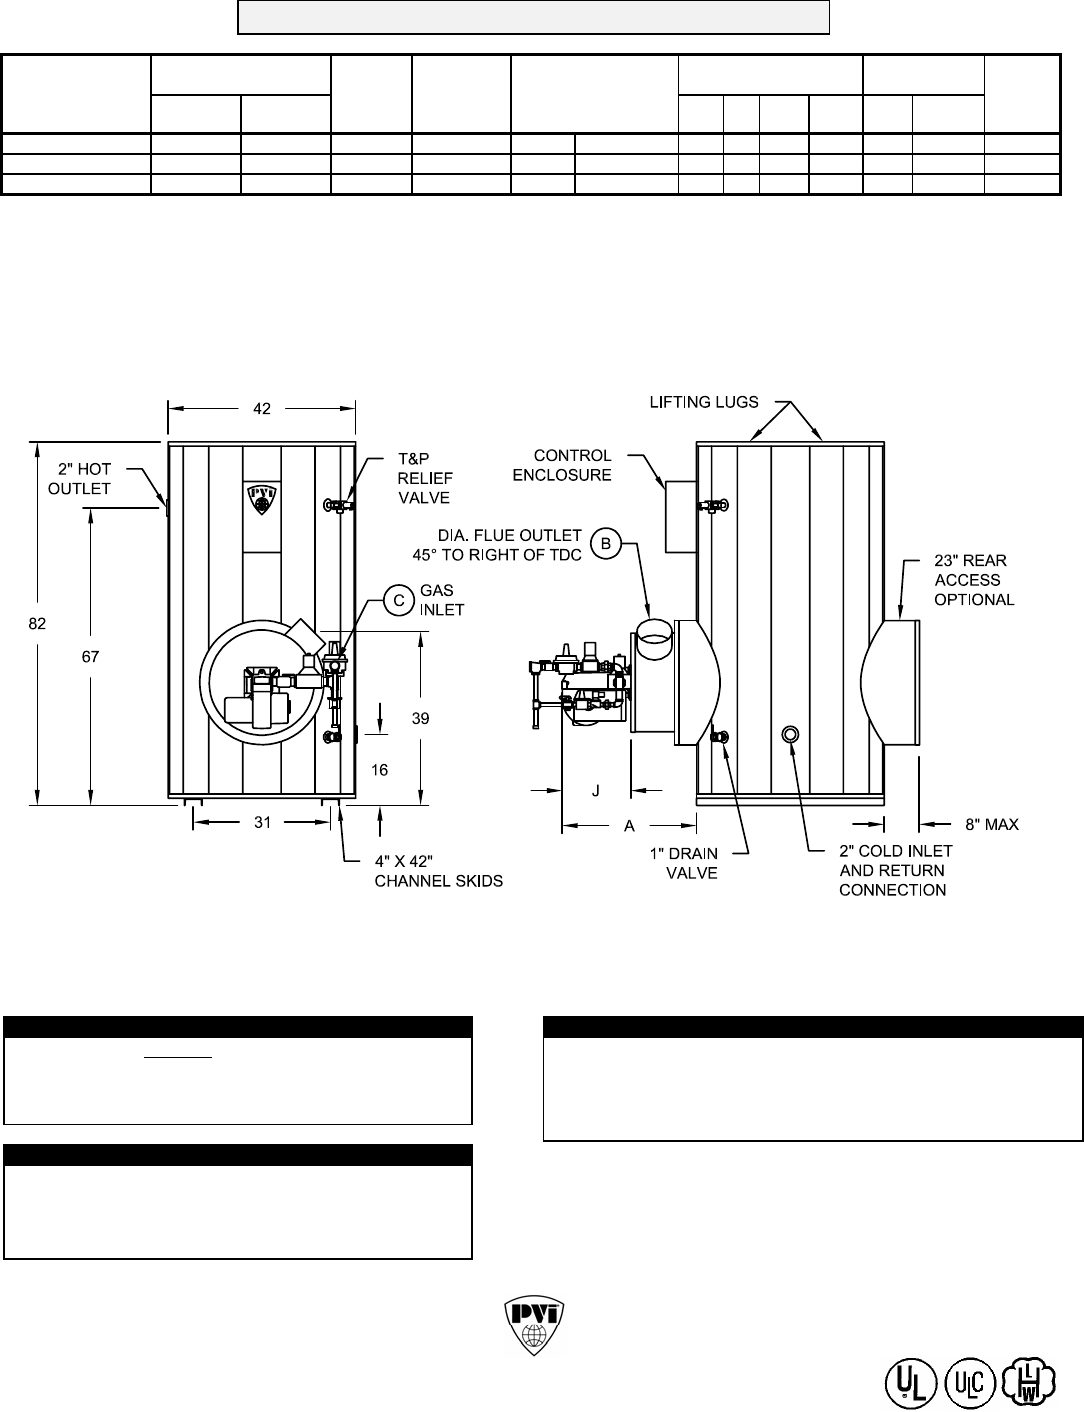 Pvi Industries Water Heater 500 N 400a Tpl User Guide